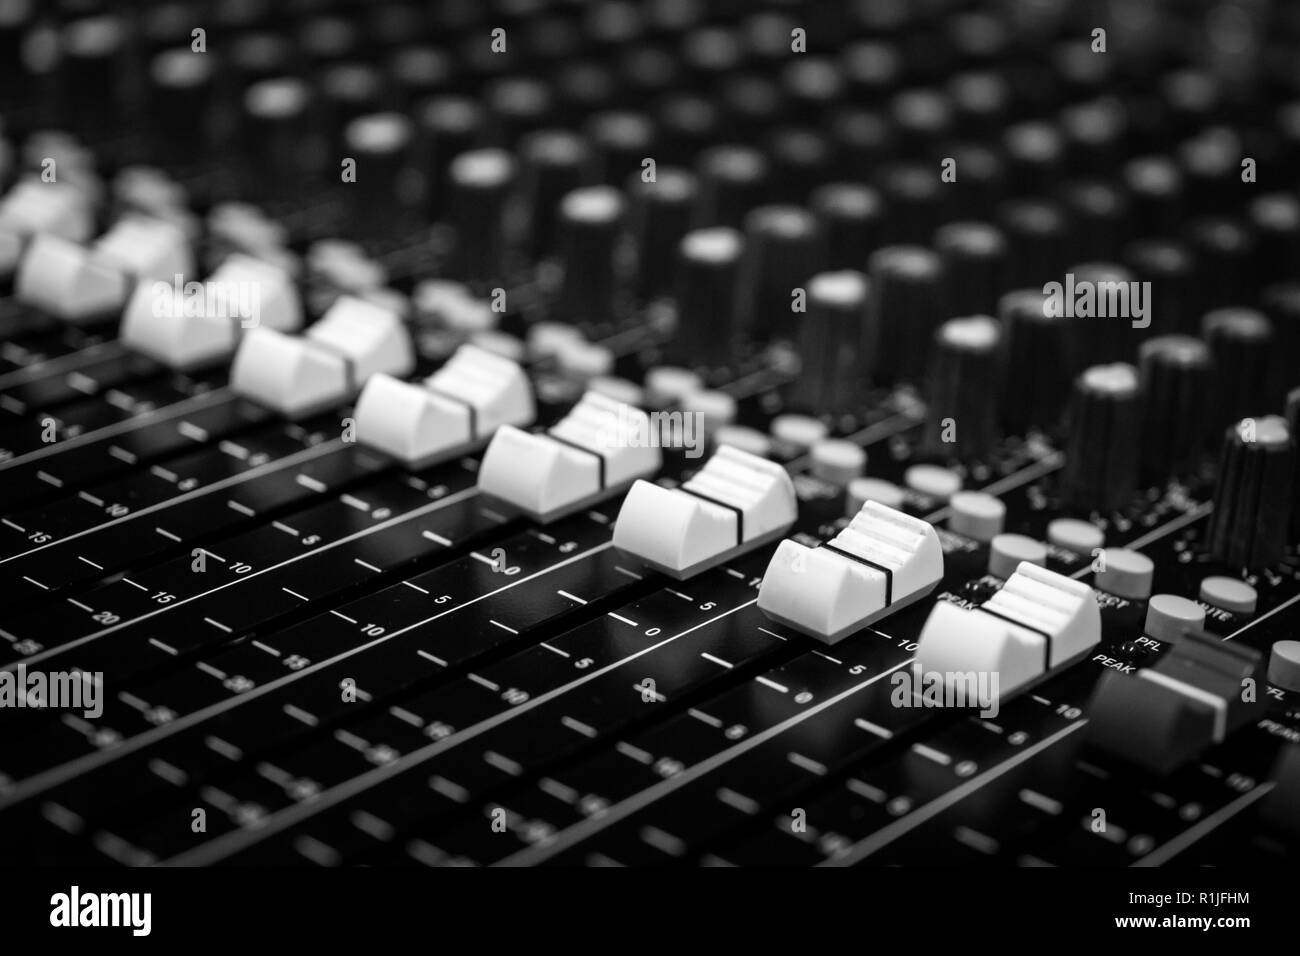 Low level view of Faders on a Professional Audio Sound Mixing Console at music festival, black desk and white Faders - Stock Image